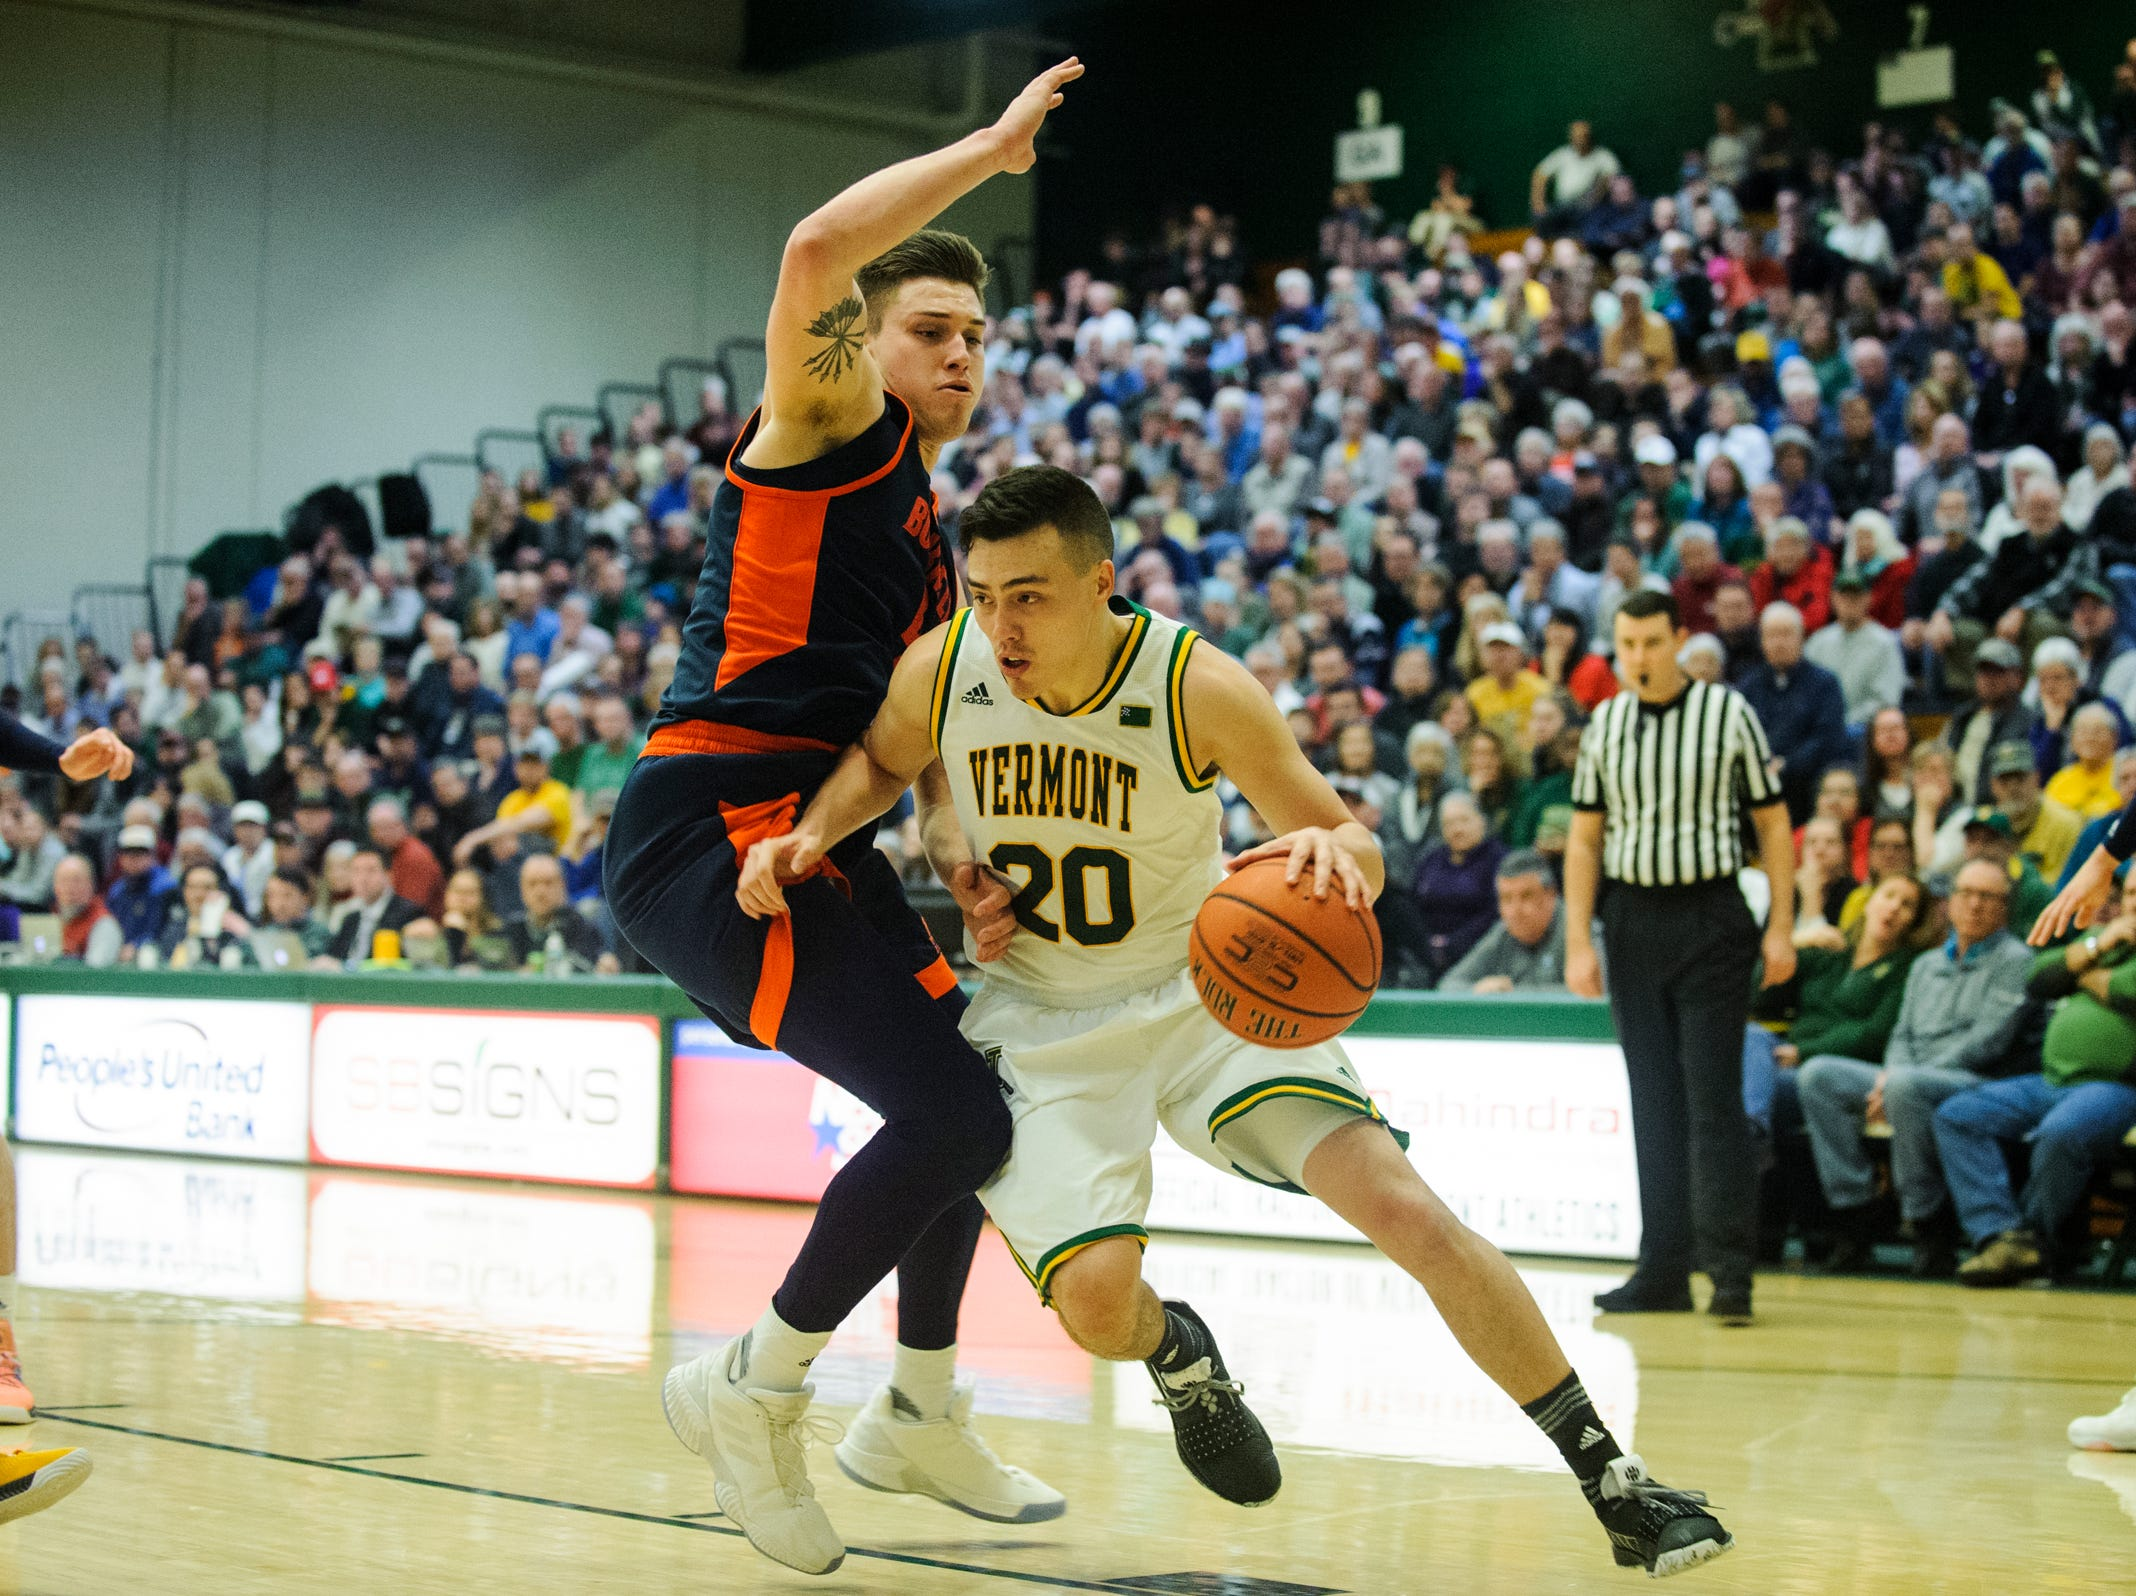 Vermont guard Ernie Duncan (20) drives to the hoop past Bucknell's Nate Sestina (4) during the men's basketball game between the Bucknell Bison and the Vermont Catamounts at Patrick Gym on Sunday afternoon November 25, 2018 in Burlington.